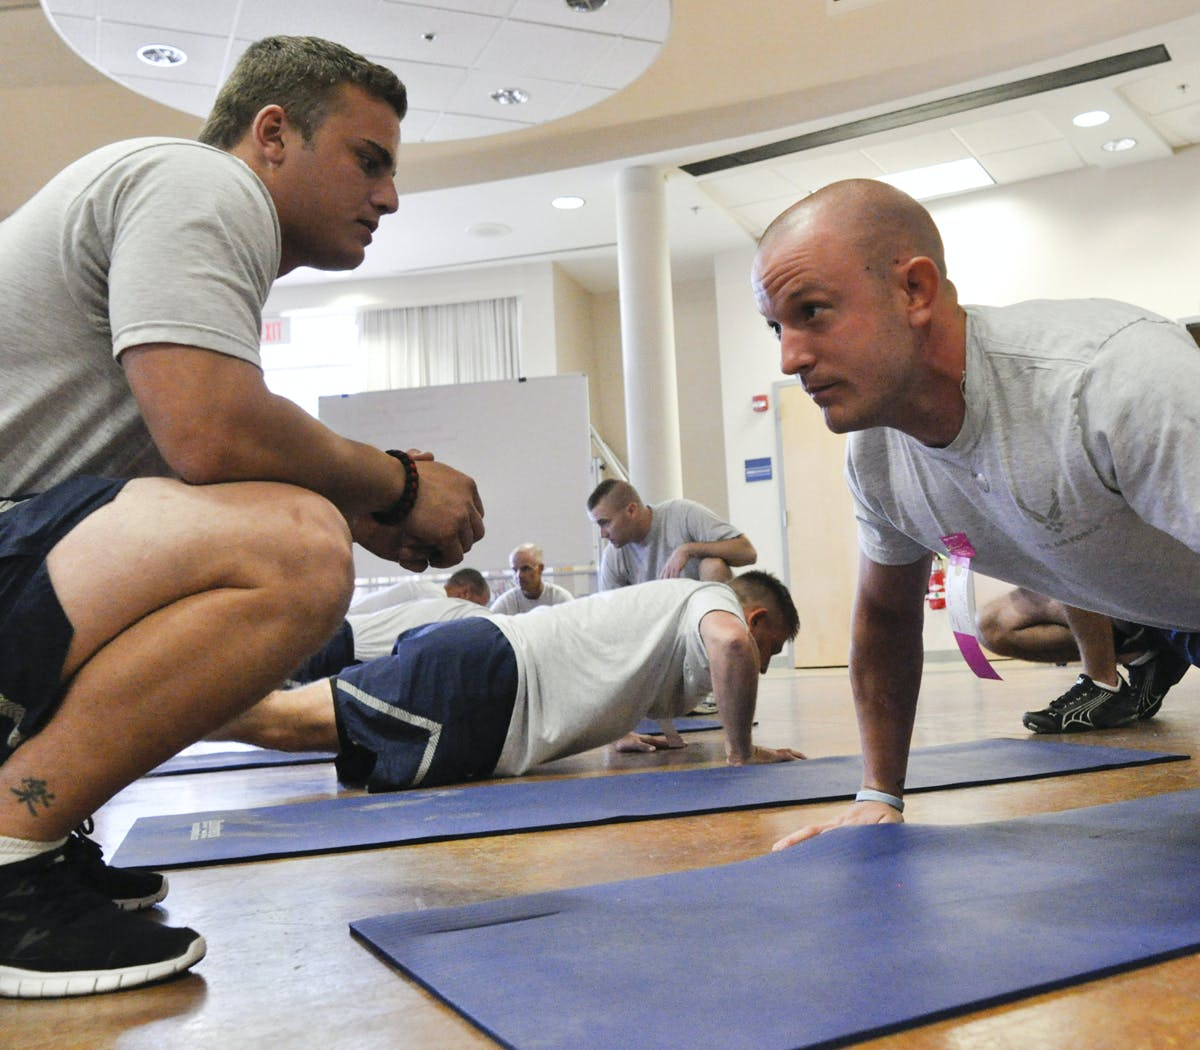 A Simple Firefighter Exercise Test Also Reveals Risk of Heart Problems